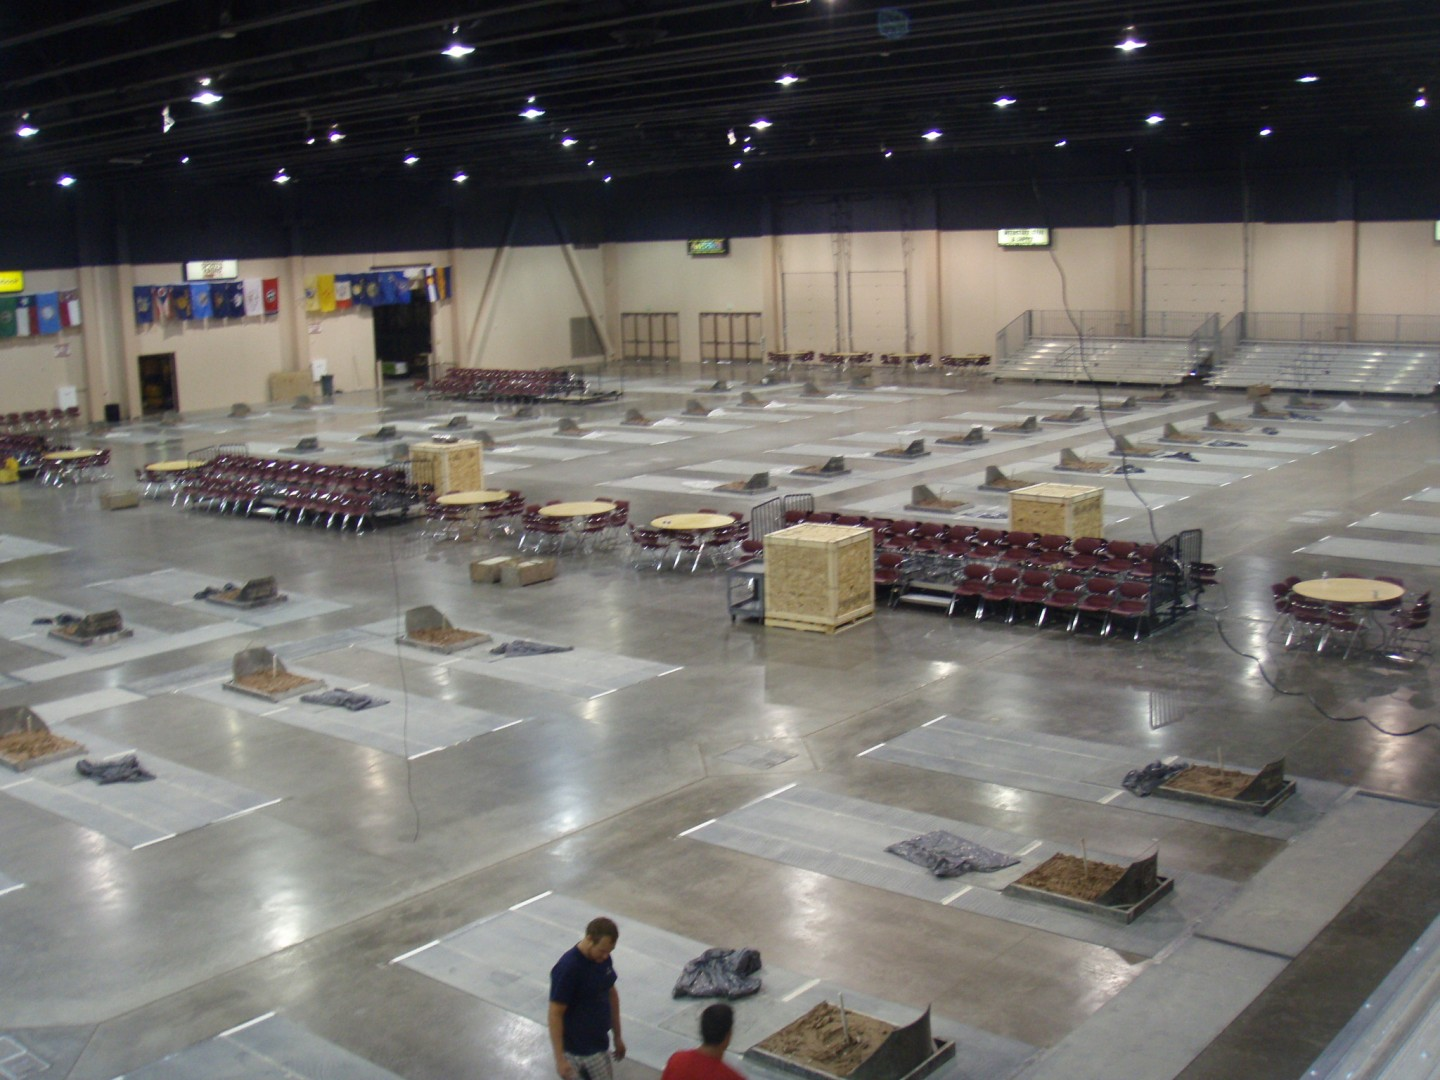 Workers busily transform the Dixie Convention Center into the world's largest horseshoe pit for the World Horseshoe Pitchers Championship now through Aug. 3, St. George, Utah, July 22, 2013. | Photo courtesy NHPA.